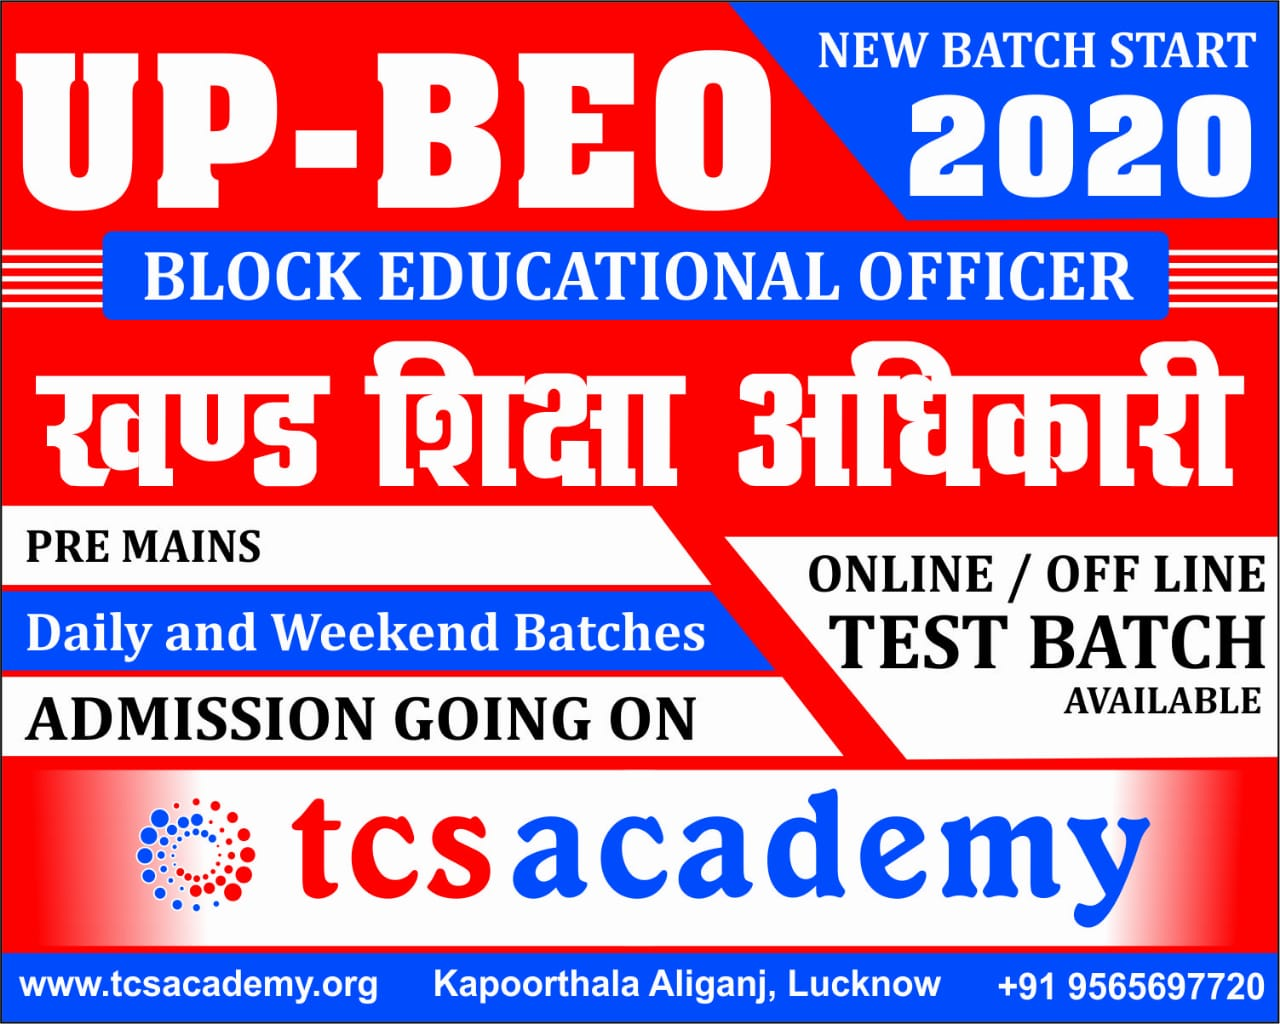 UP BEO EXAM STUDY MATERIAL NOTES TEST SERIES - TCS ACADEMY